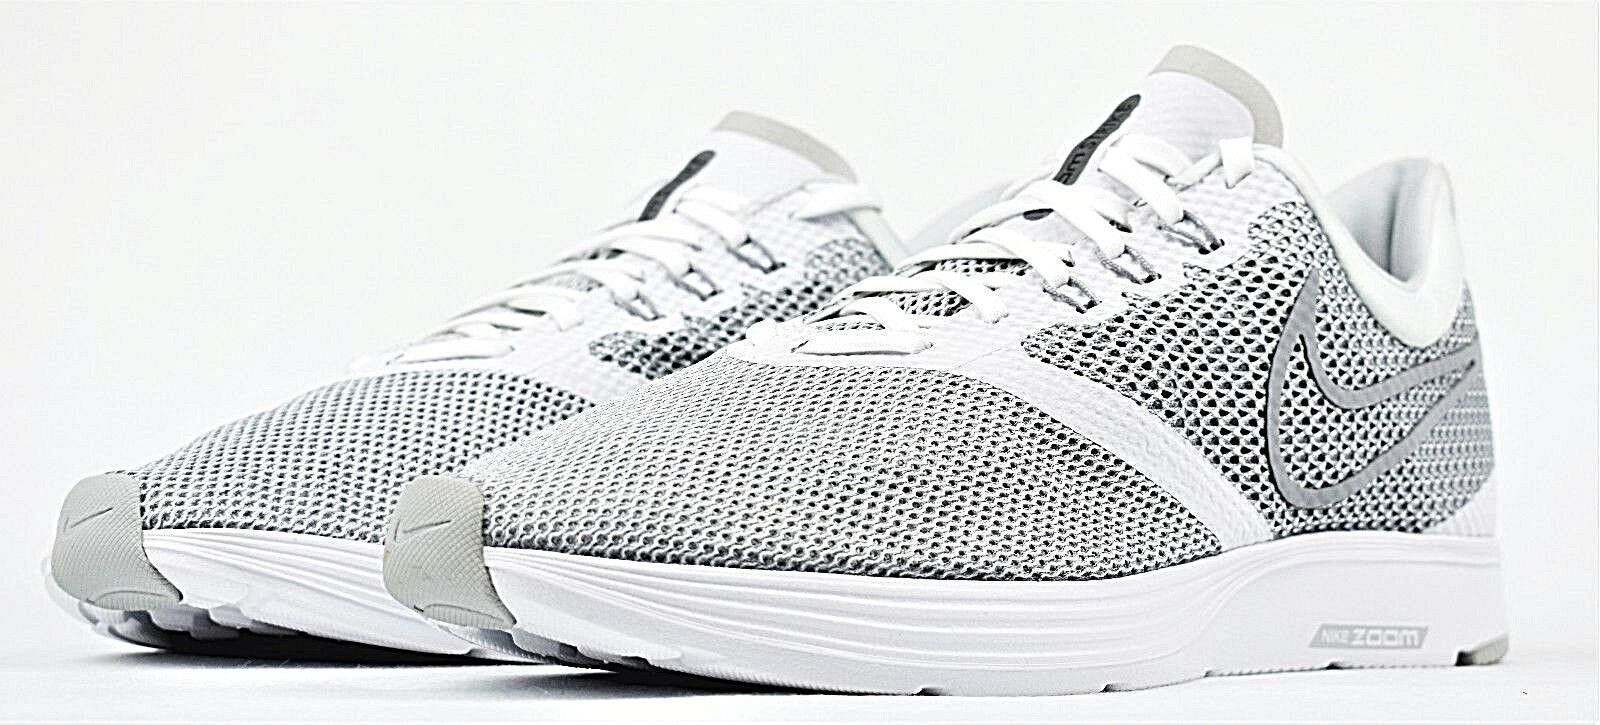 NIKE ZOOM STRIKE NEW IN BOX MEN'S RUNNING SHOES WOLF GREY WHITE REFLECTIVE